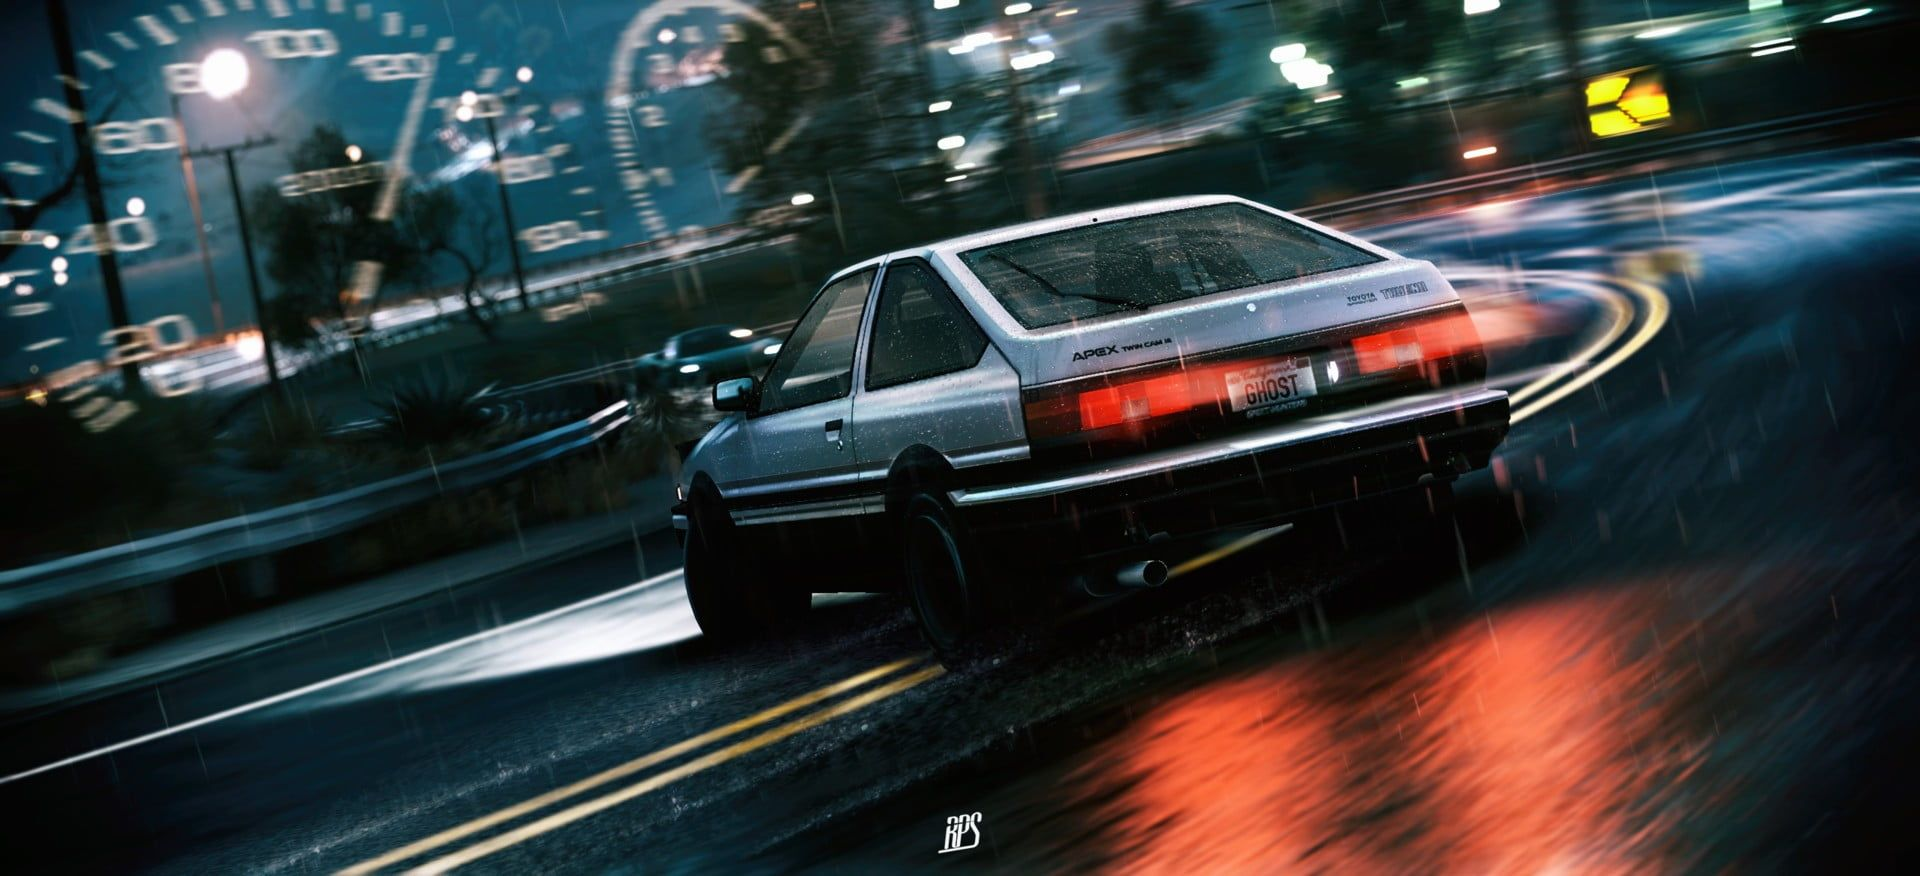 Silver Coupe Car Initial D Drift Toyota Ae86 Toyota Sprinter